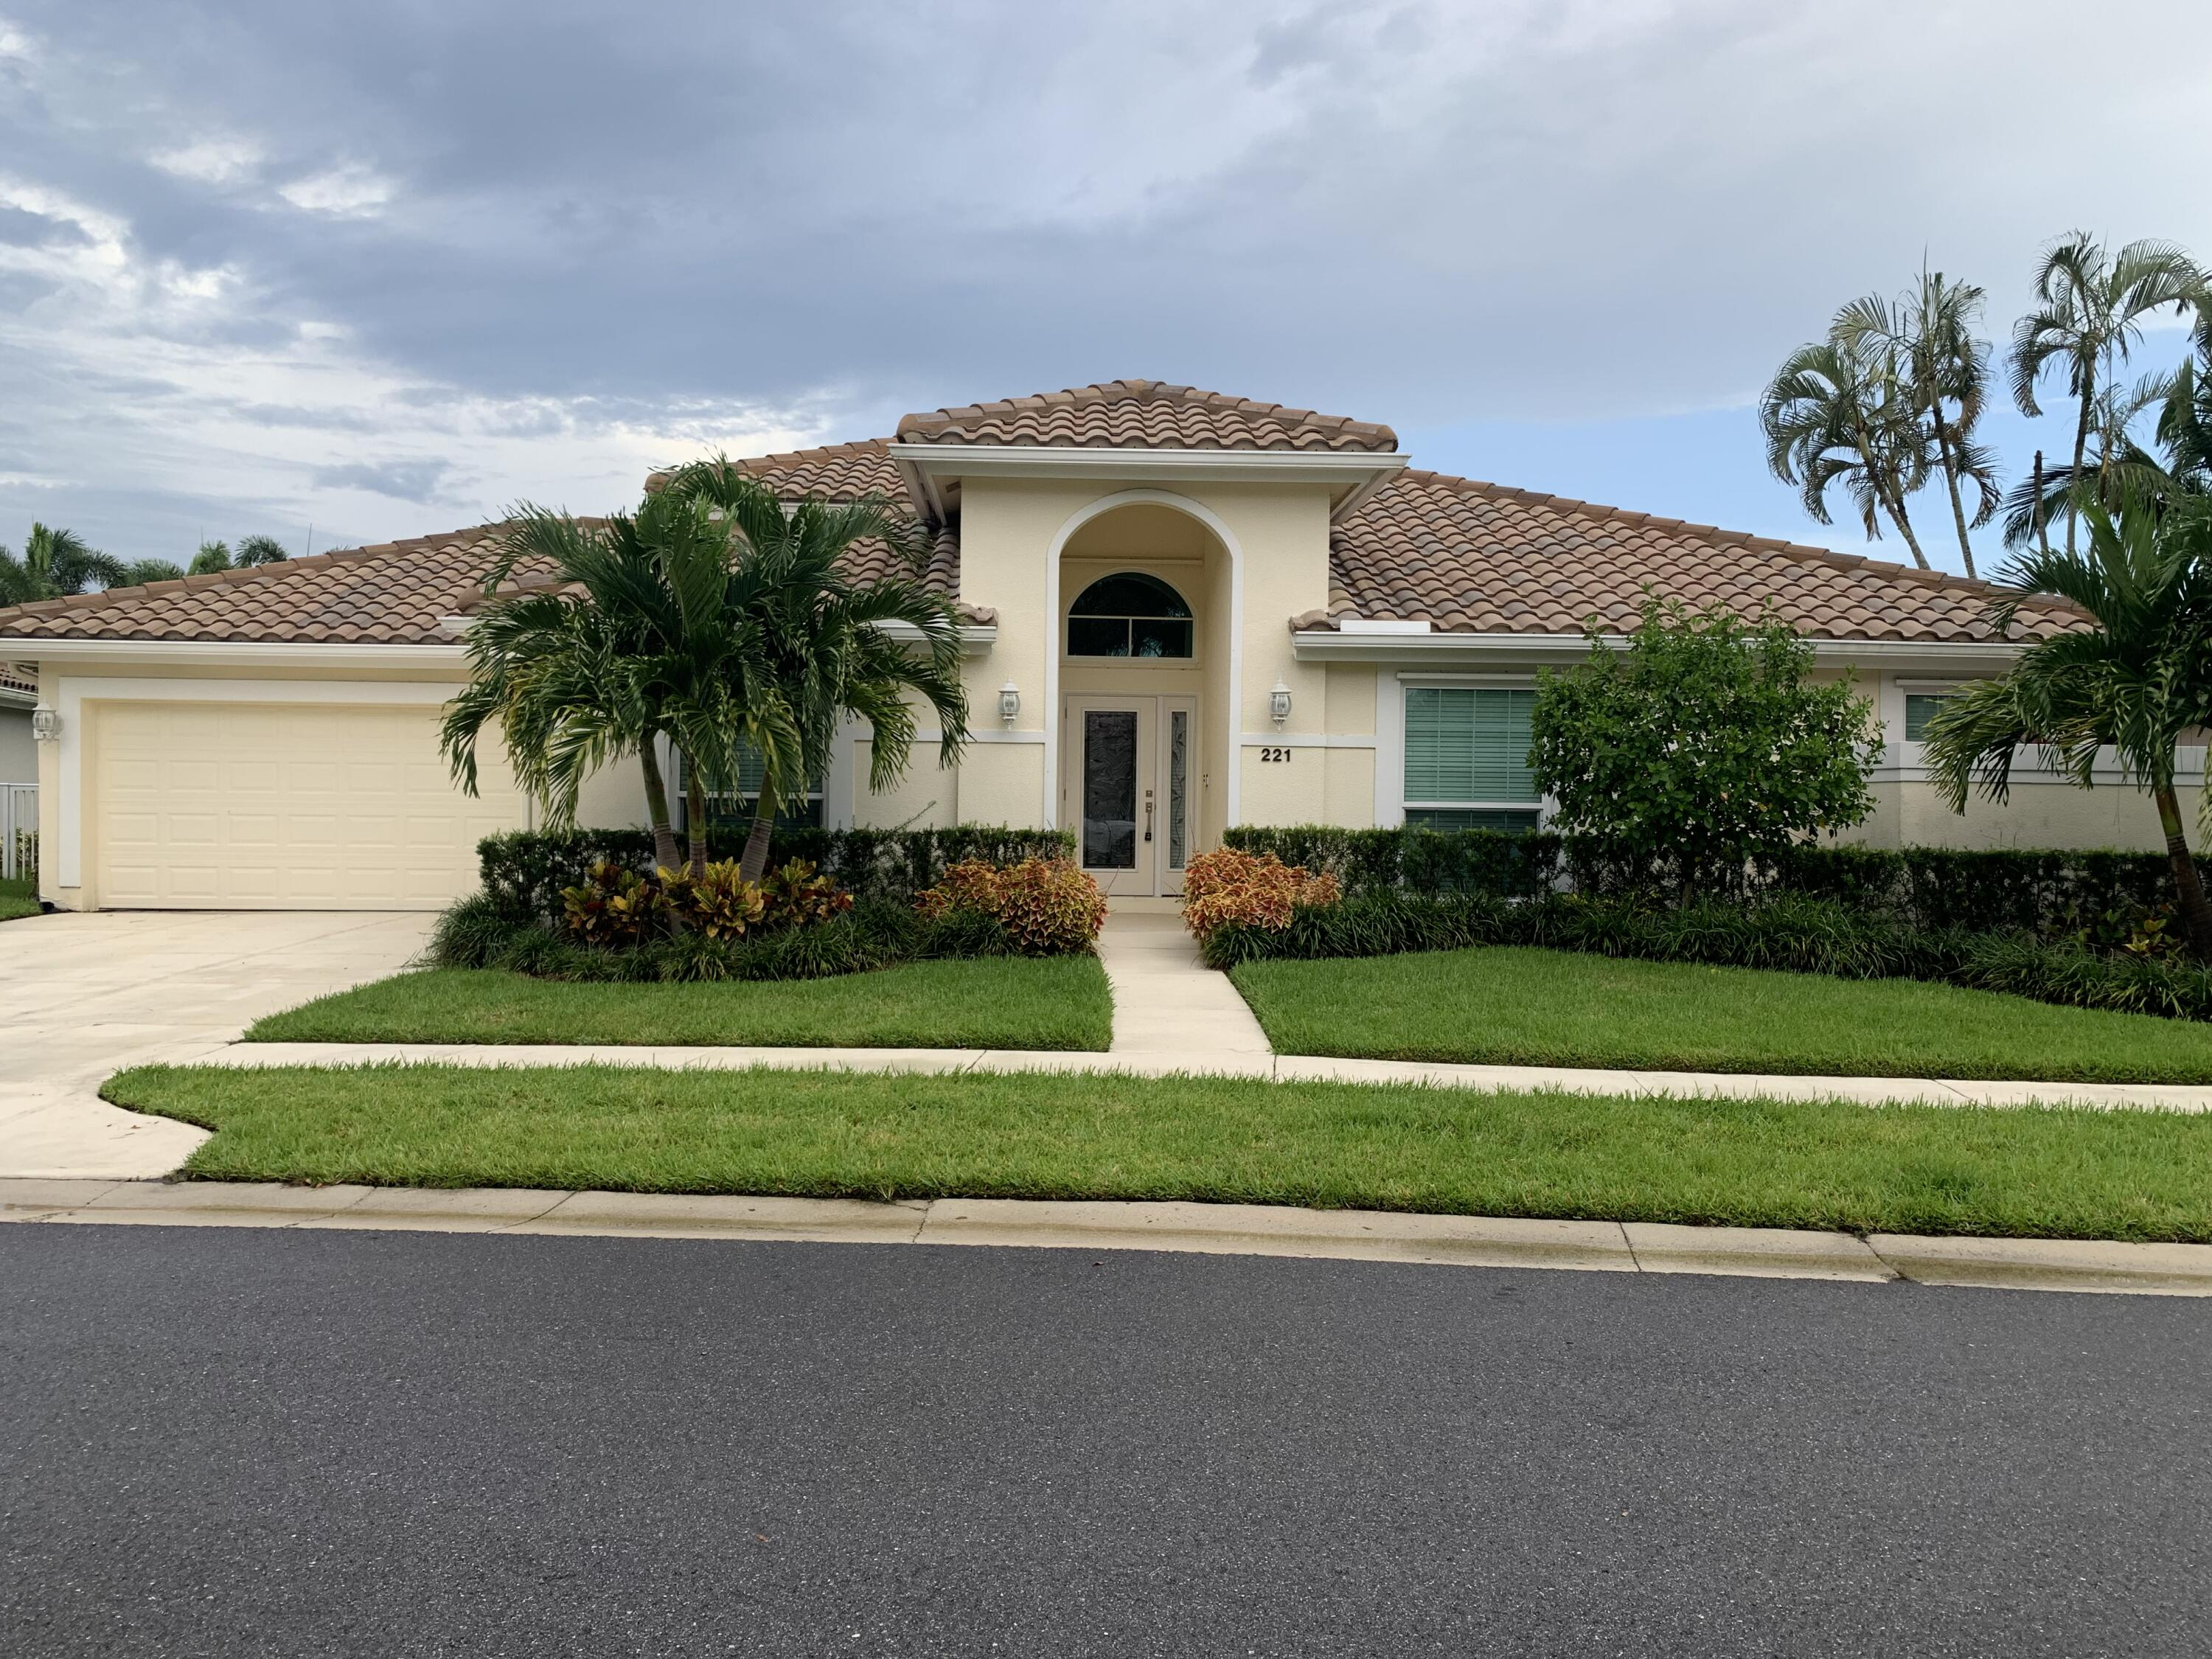 Beautiful Renovated Furnished Home in the great neighborhood of Eagleton Lakes in PGA National available for Annual or Seasonal Rental(Oct-April)$8500..This home has it ALL!  Amazing Kitchen, Master Bedroom/ Bath, Custom Closets and even an Air Conditioned Garage.